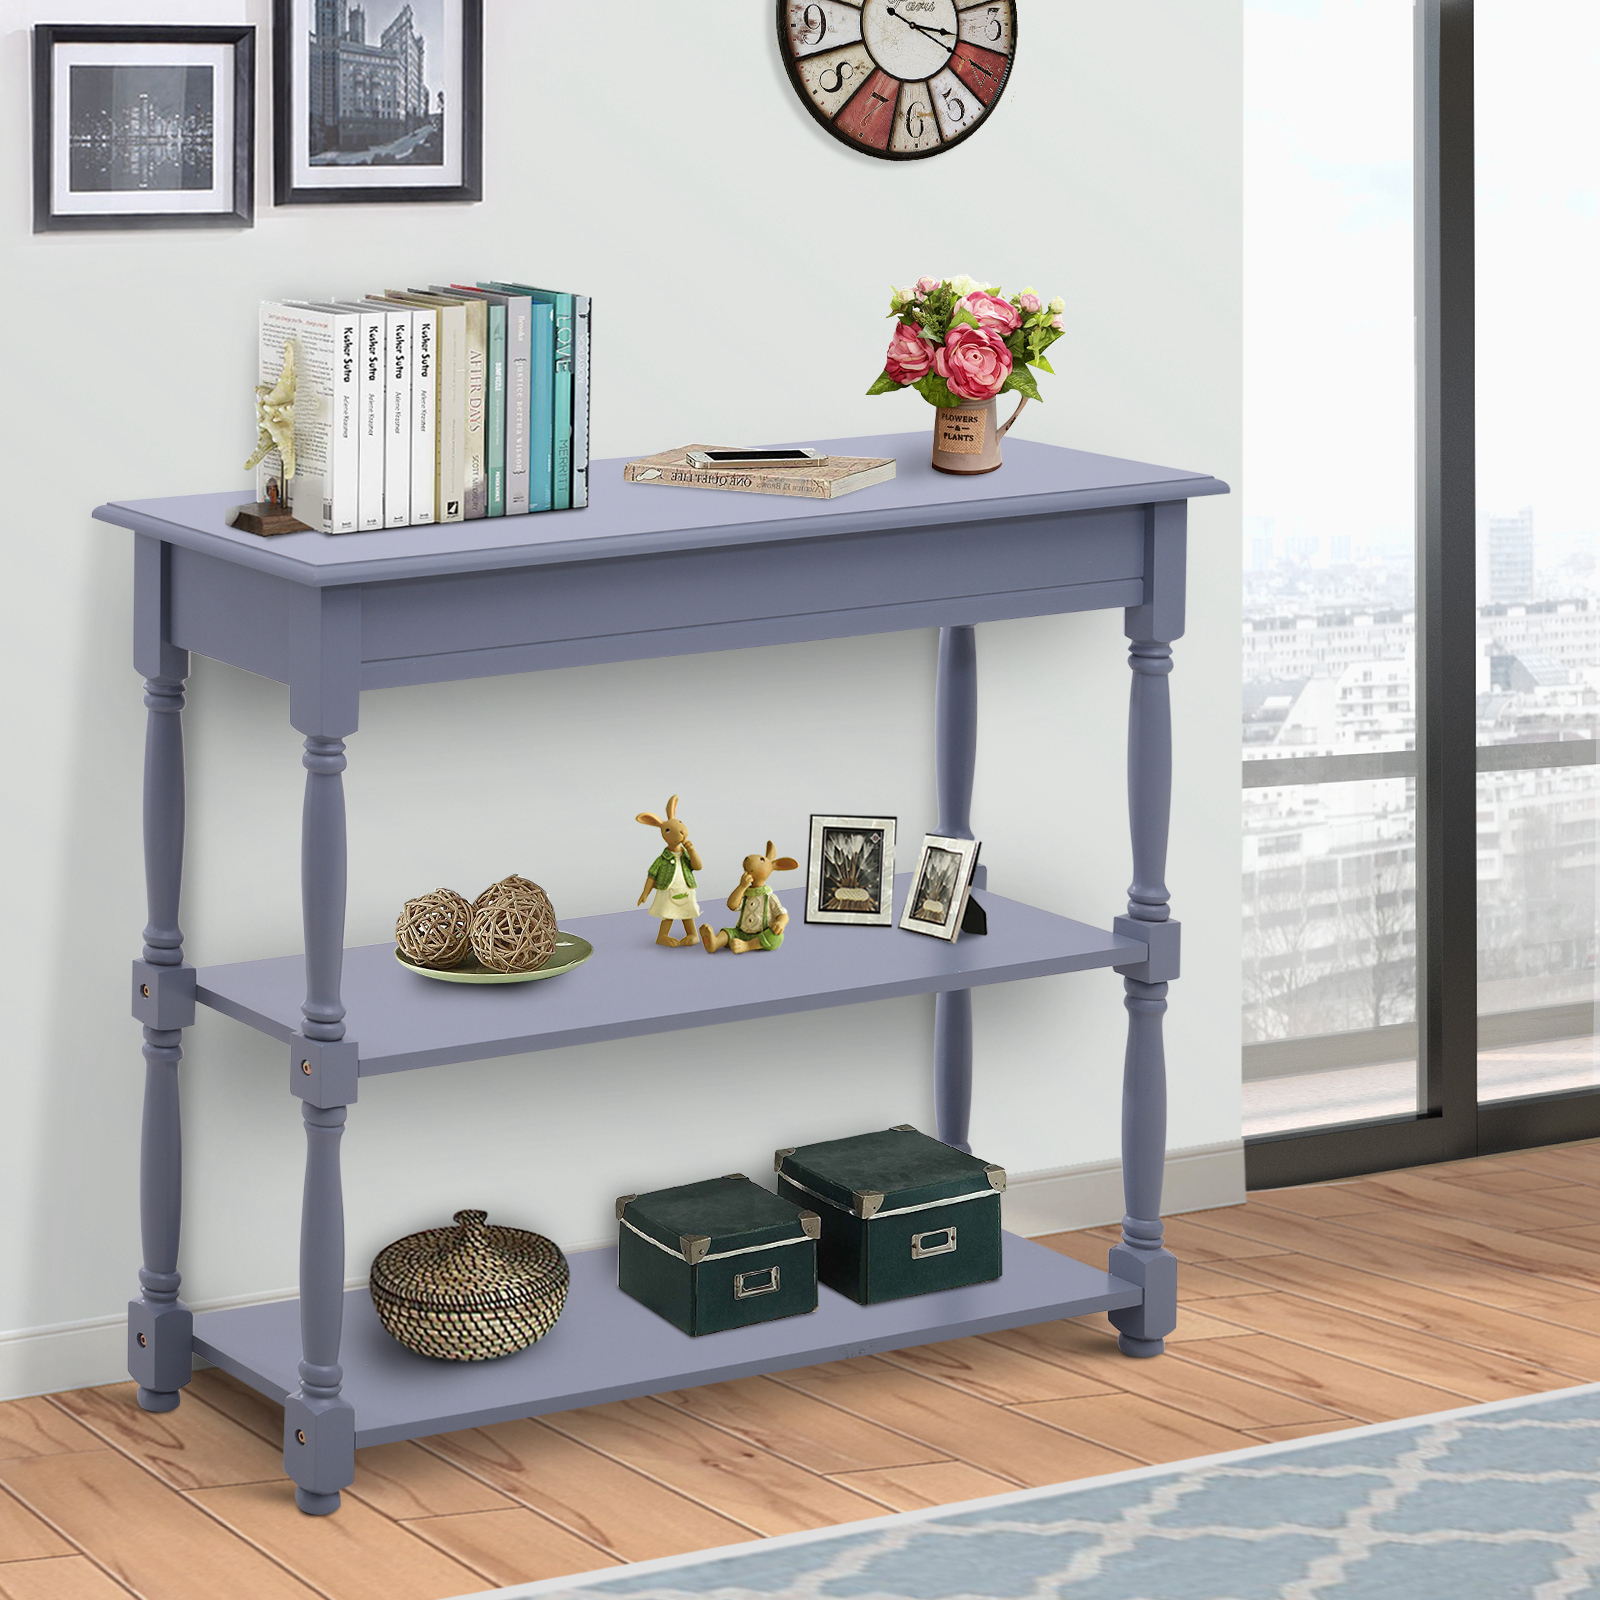 Details about HOMCOM Console Table Wood Entryway Sofa Accent Hallway Living  Room Furniture